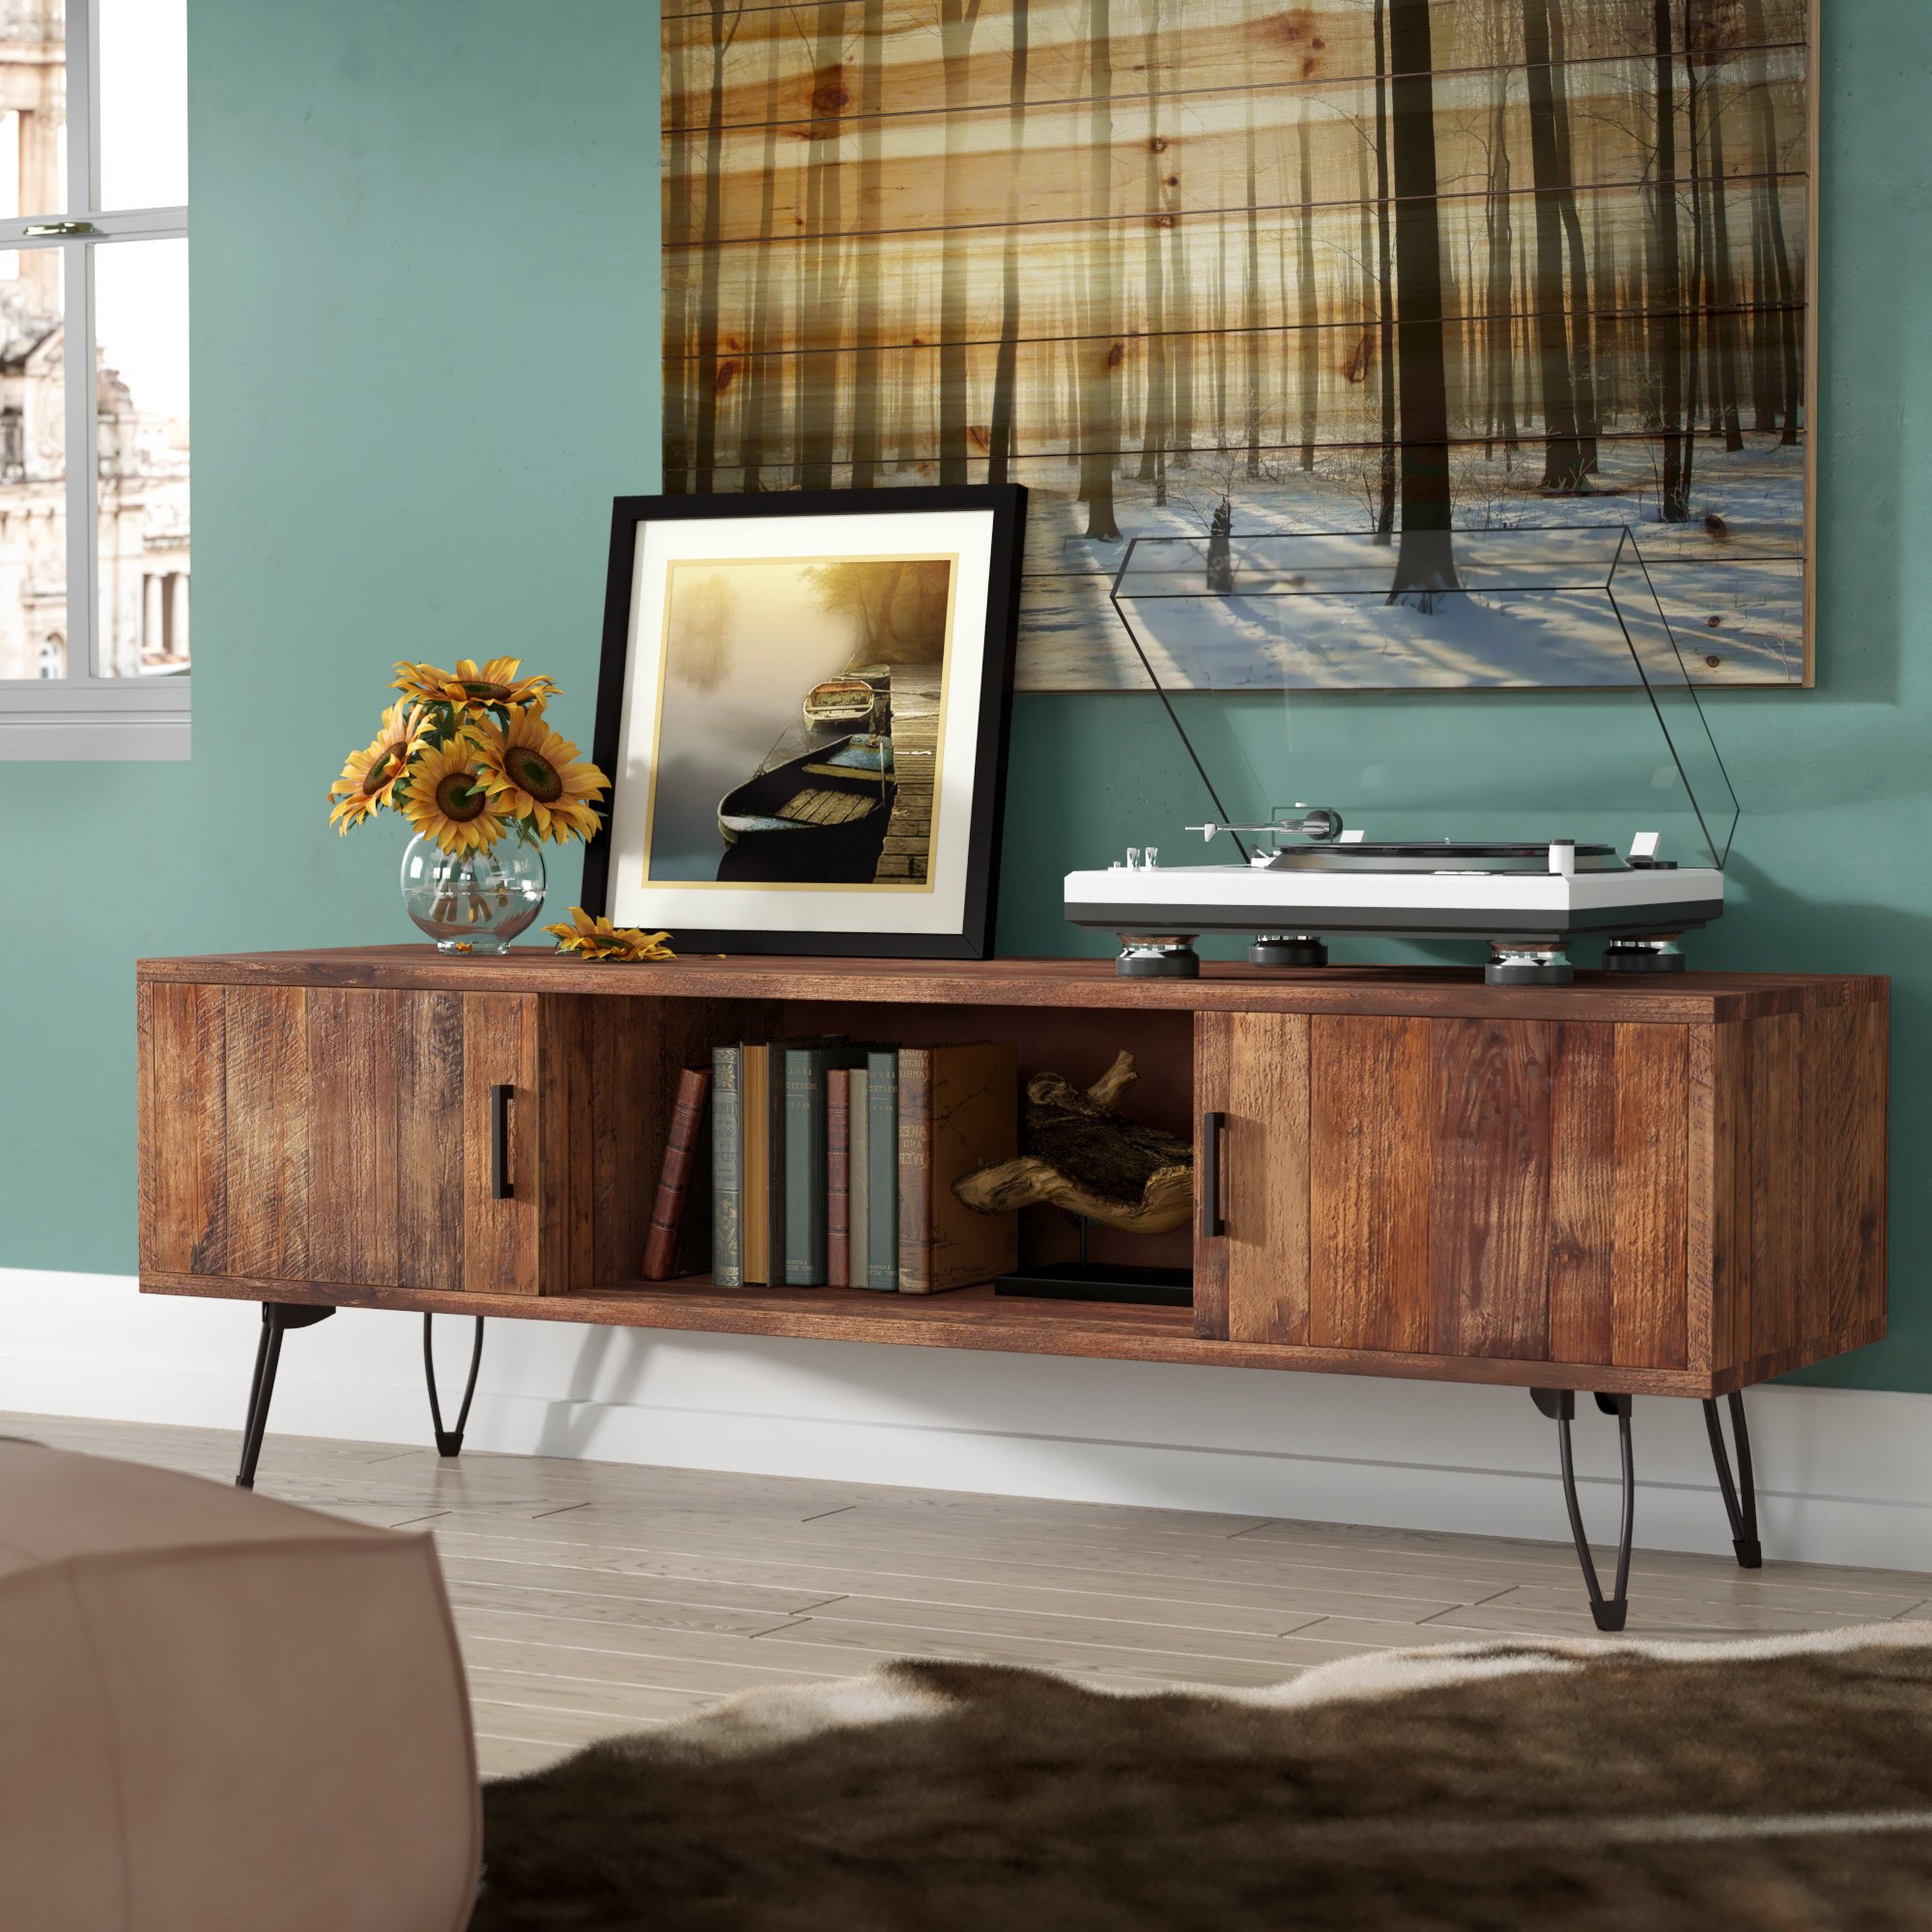 Solid Wood Tv Stands & Entertainment Centers You'll Love | Wayfair Throughout Natural Wood Mirrored Media Console Tables (Gallery 10 of 20)